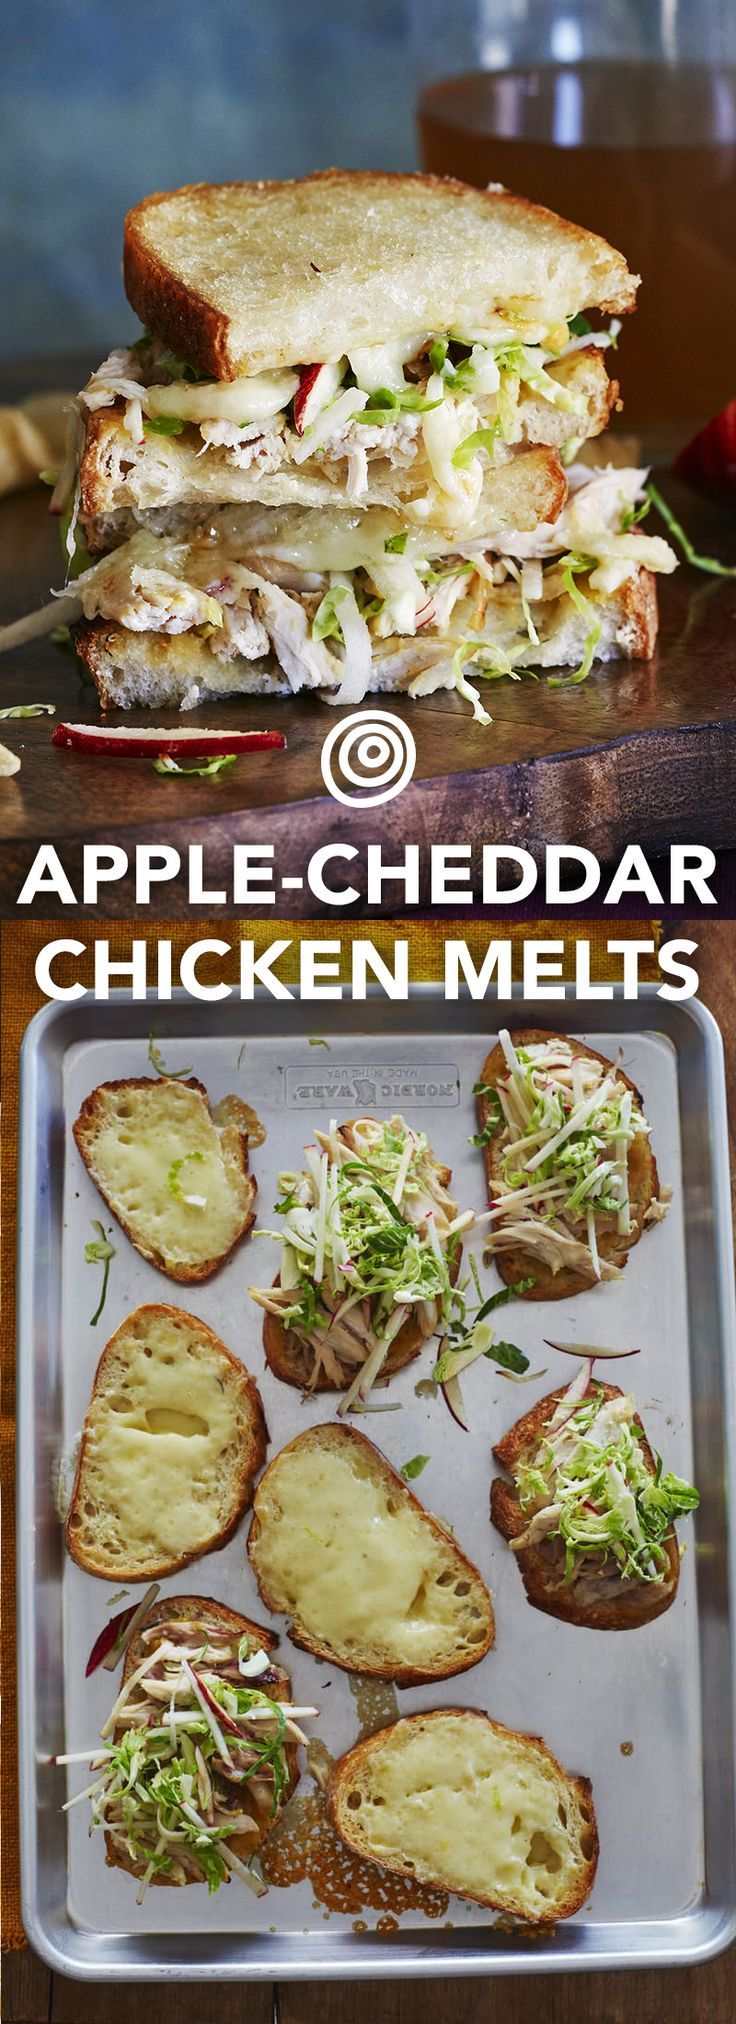 Recipe: Apple, Cheddar & Chicken Melts